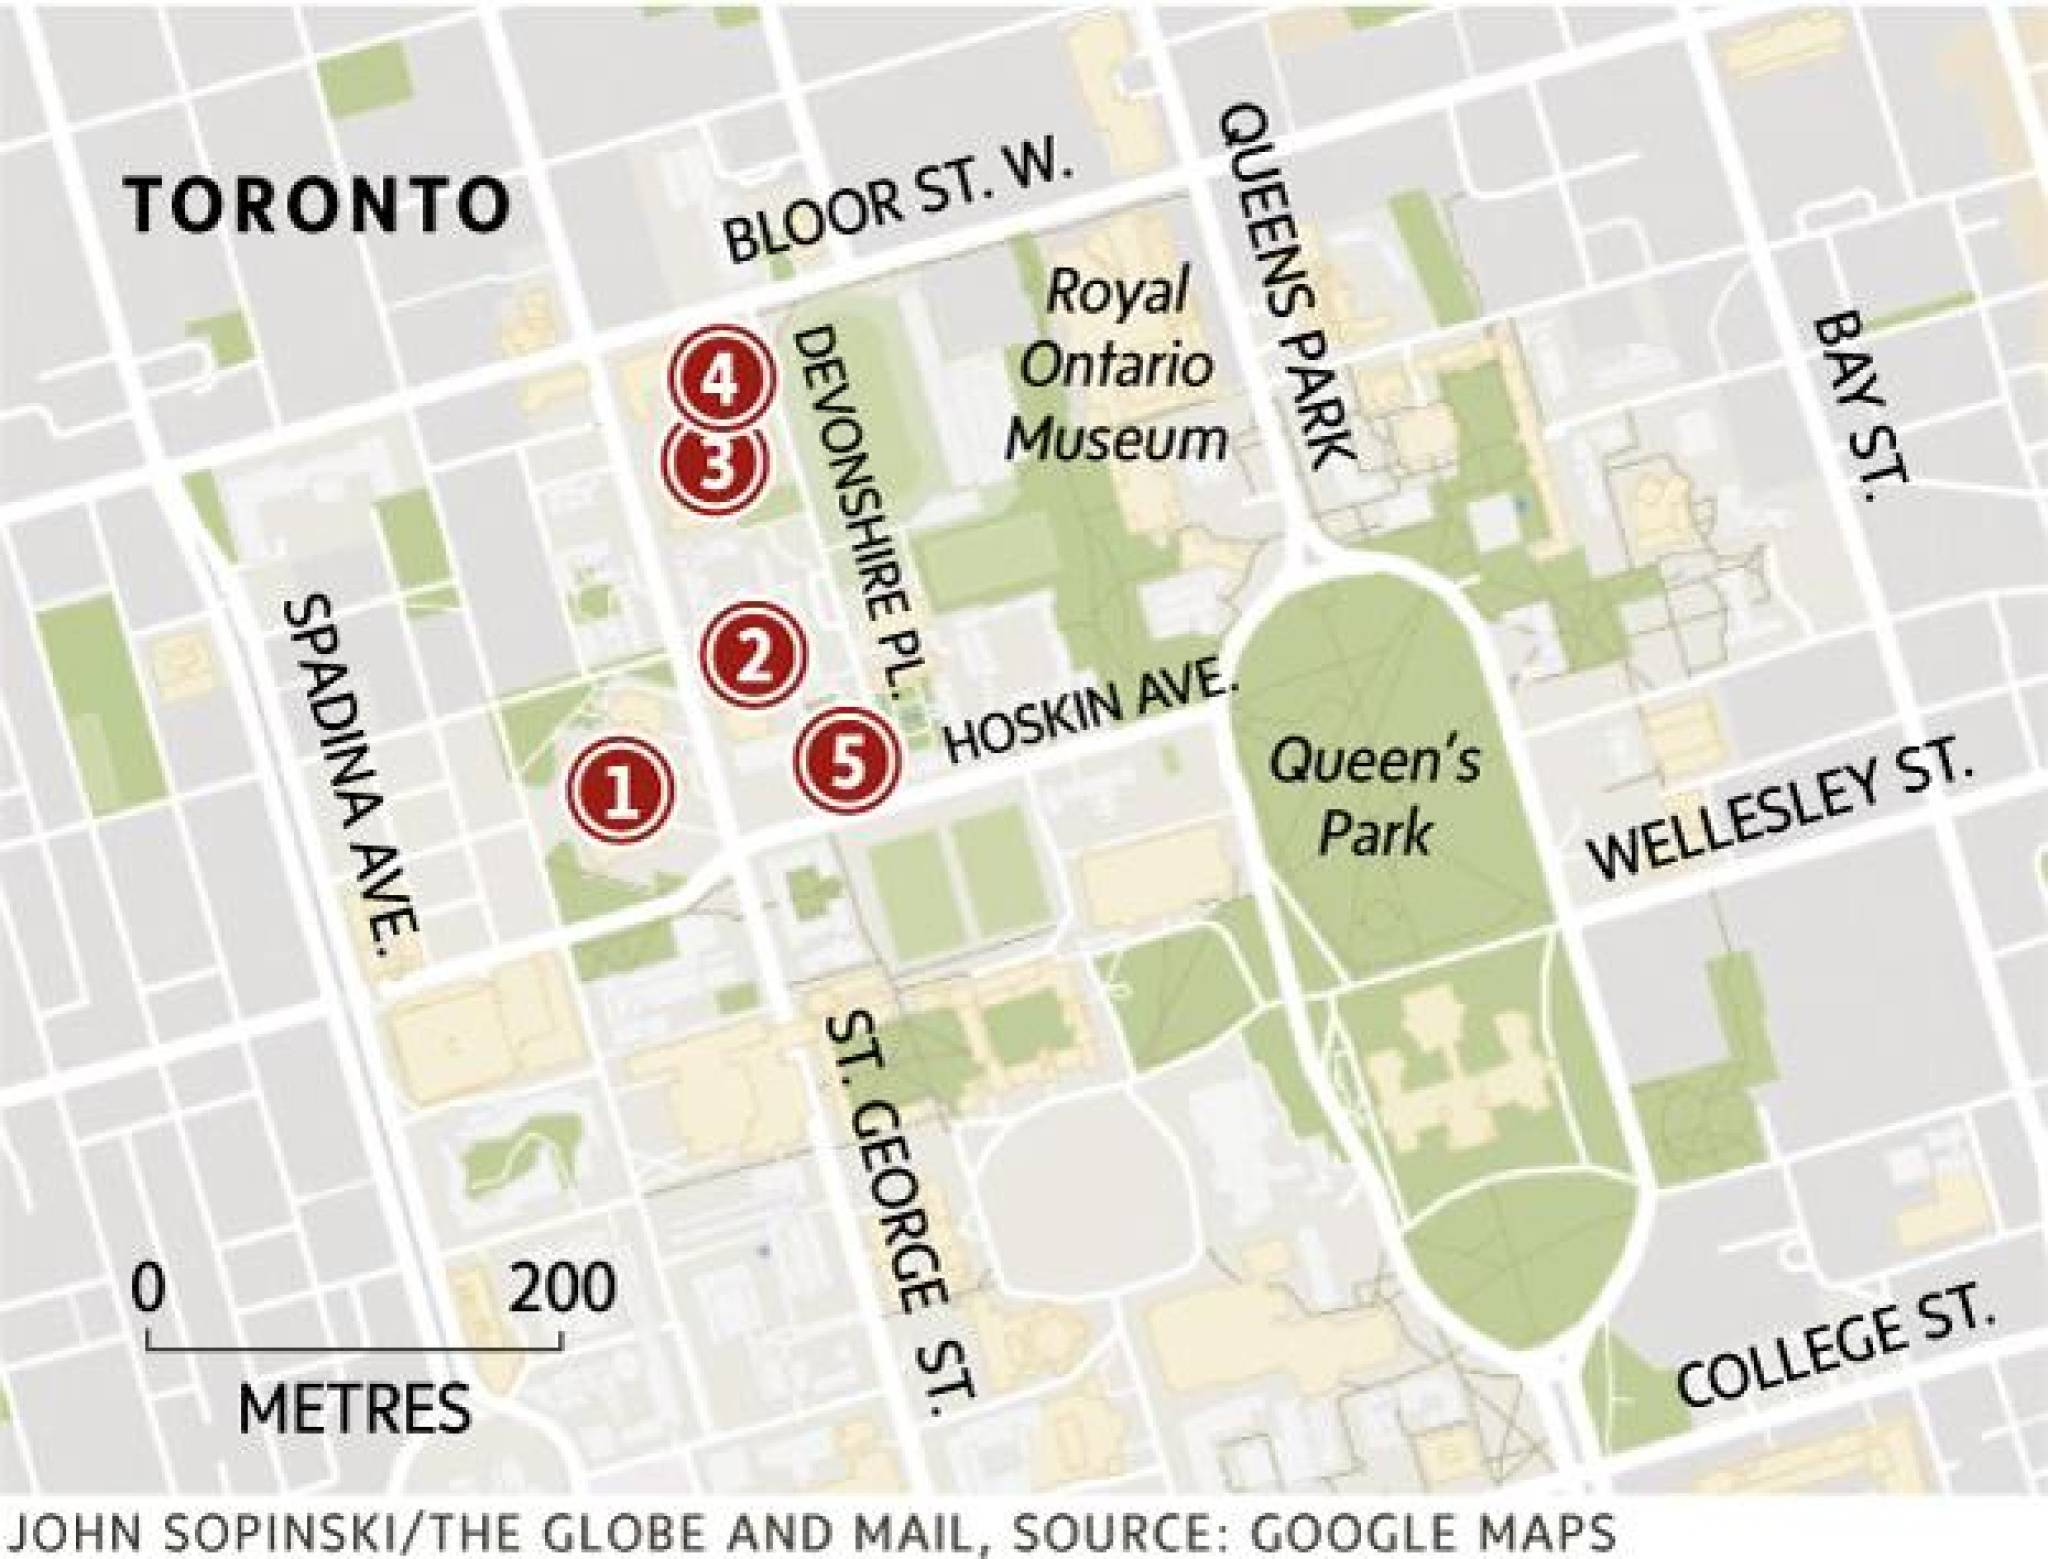 U O F T Campus Map.The University Of Toronto May Have The Best Architecture In The City